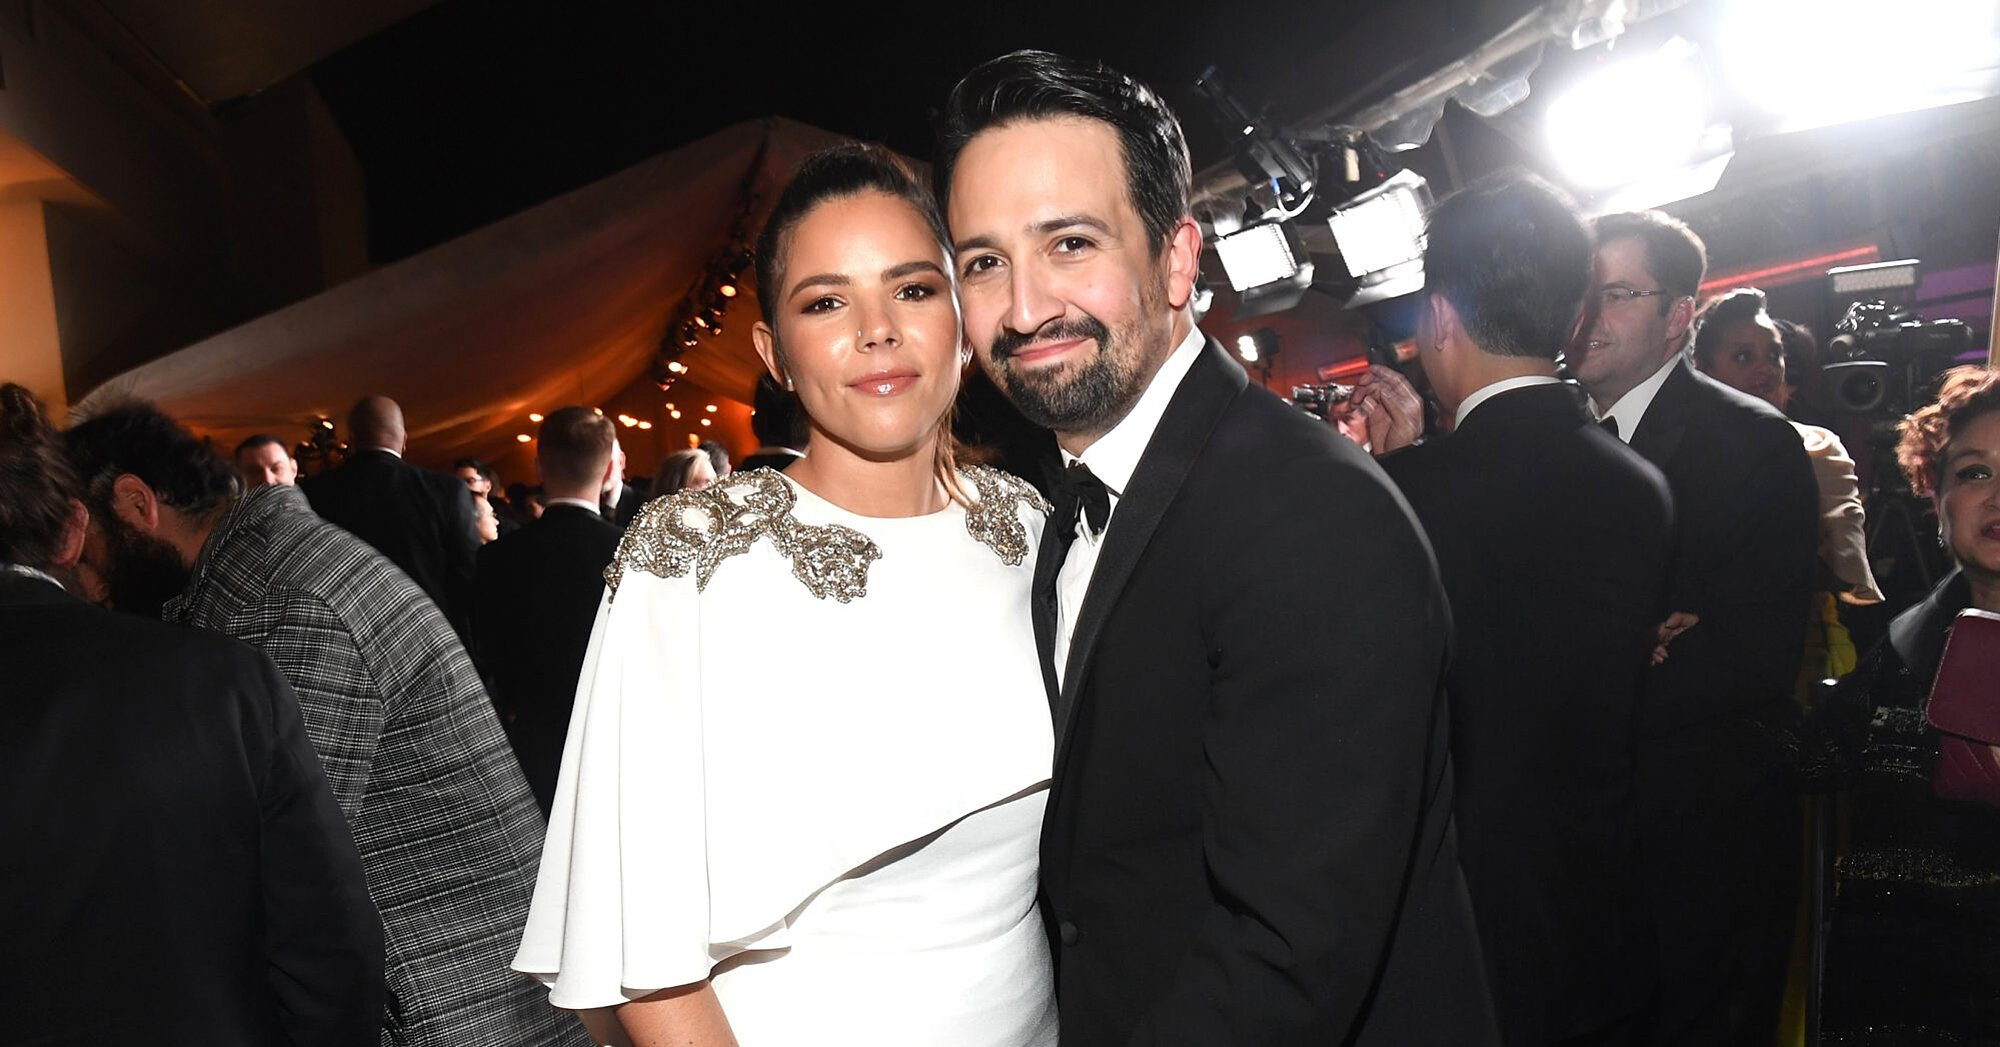 Lin-Manuel Miranda's Wife Says She 'Always Boos' When He 'Kisses Someone' in Hamilton - MSN Money